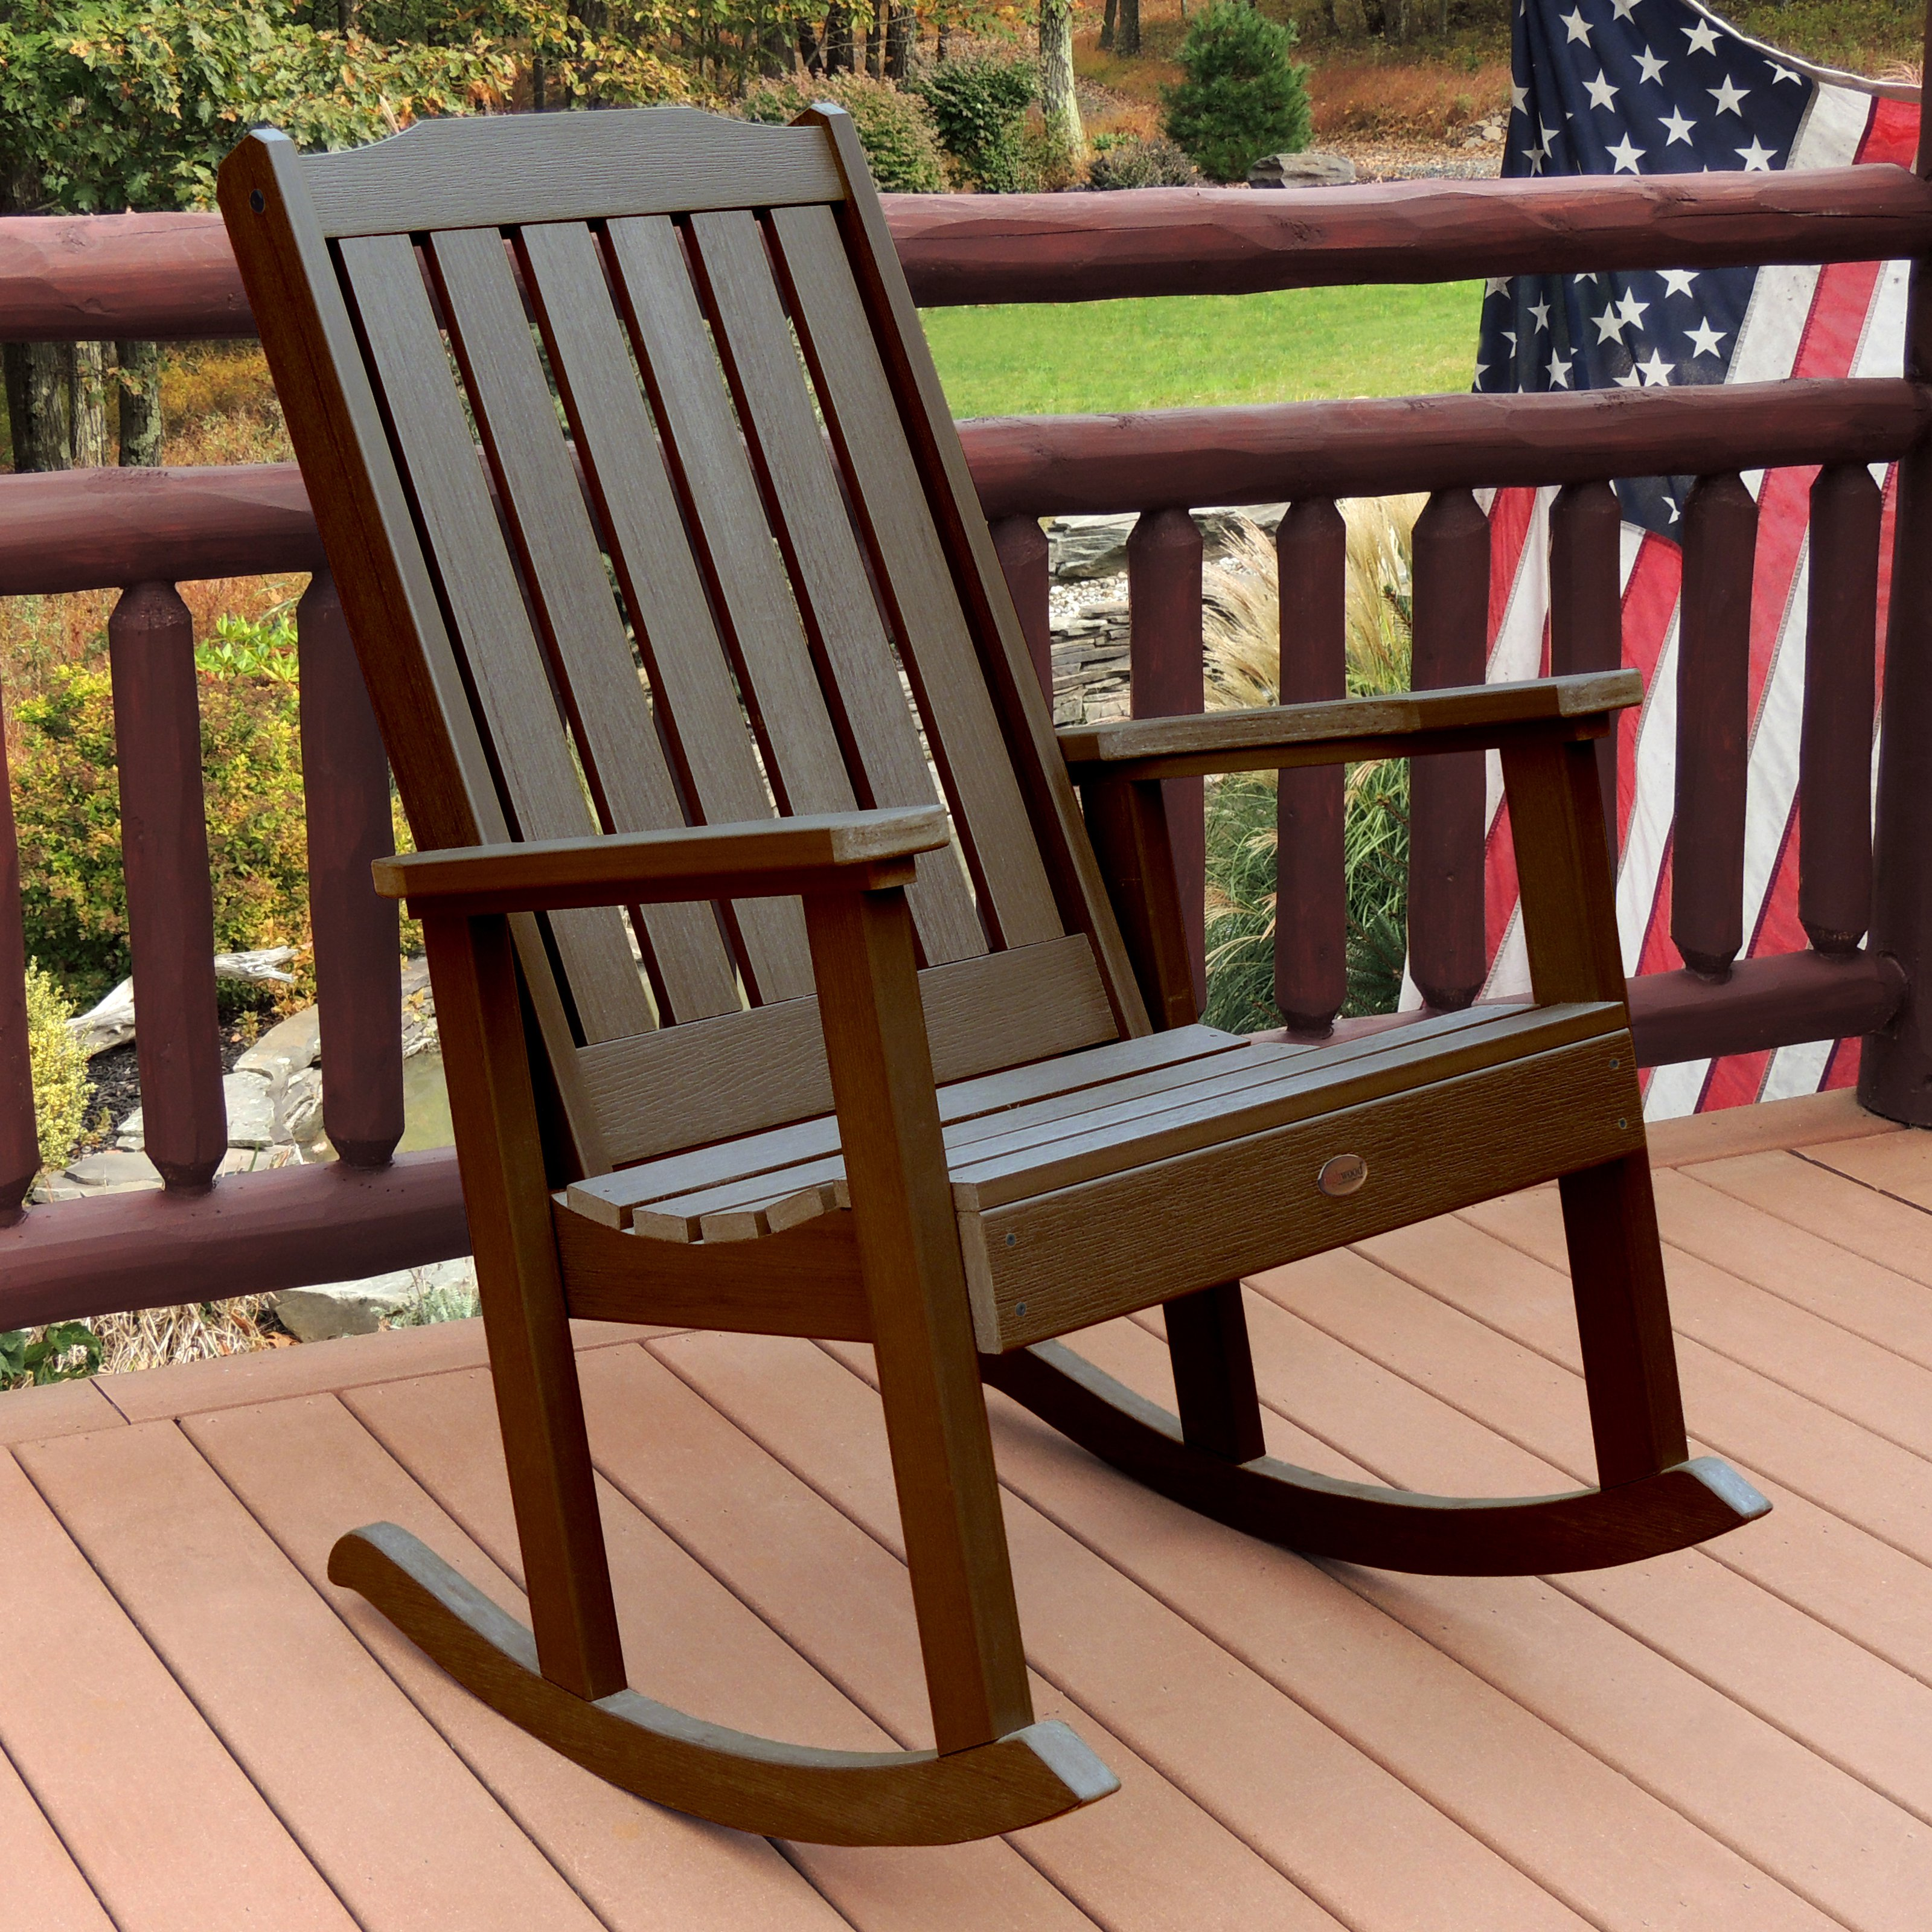 Outdoor wood rocking chairs - Outdoor Wood Rocking Chairs 49